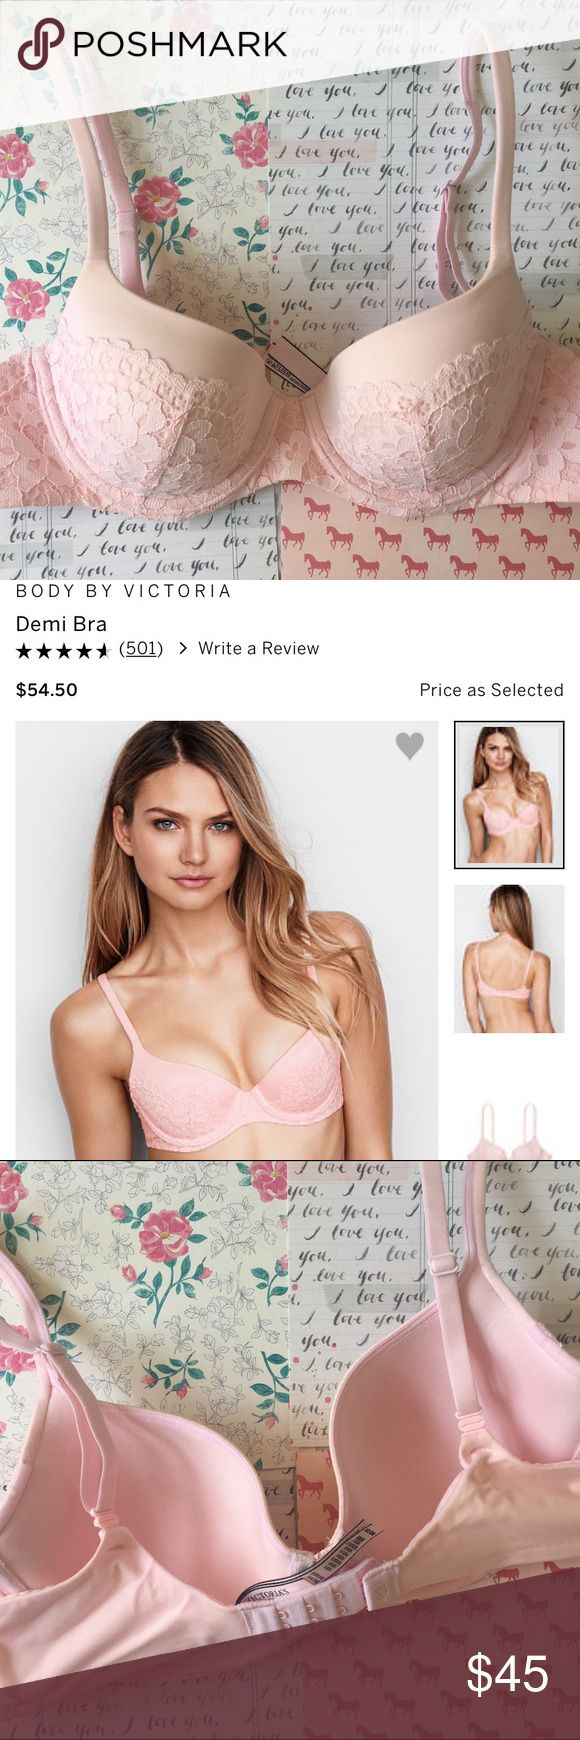 USED ONCE Body by Victoria VS Lined Demi 36B Hi! I am selling this beautiful bra that I only got in February 2017!!! If you take a look at the Victoria's Secret website, you will see that this is listed as a new product that they came out with! I only used it once and realized that I had too many bras! You can also unsnap the back end of the strap to wear it as a cross body!!! If you want more details, please search the item up on the VS website! It has a lot more description that I can't…